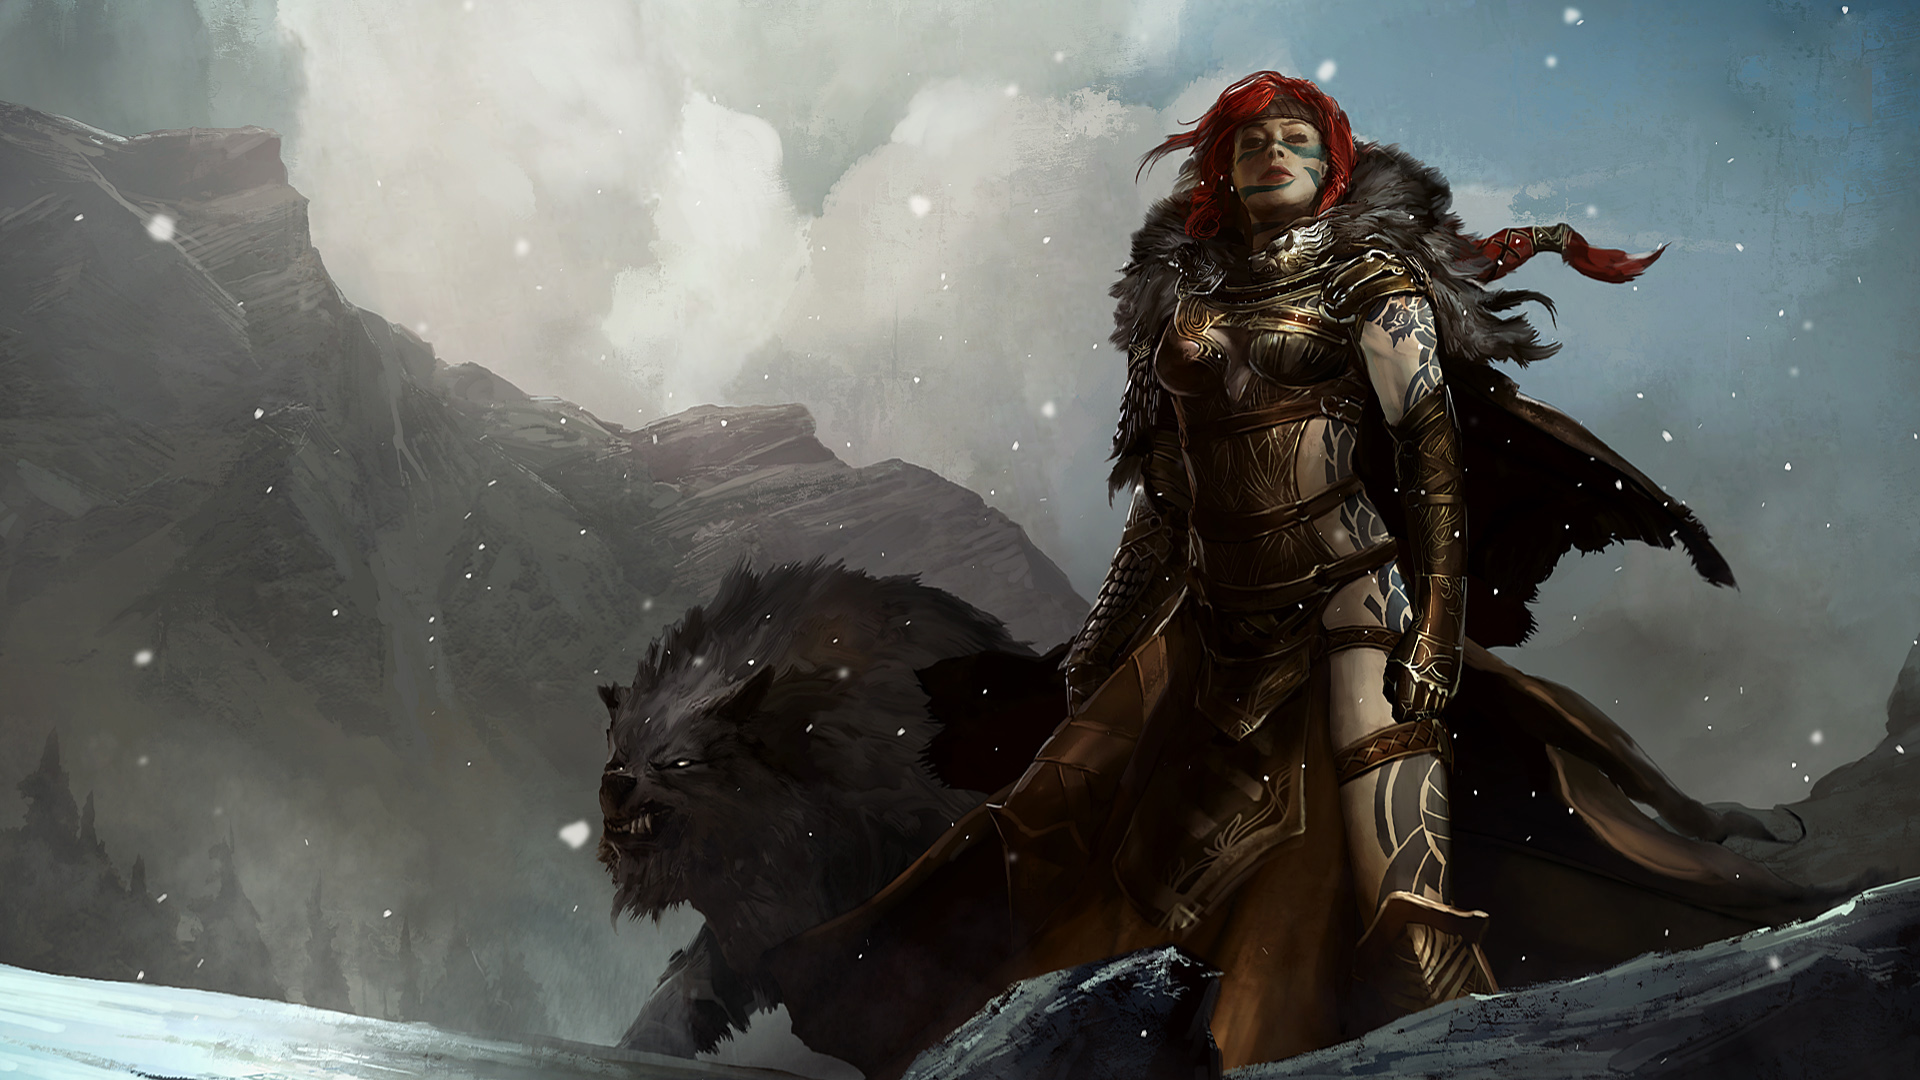 Fantasy art on the theme of the game Guild Wars